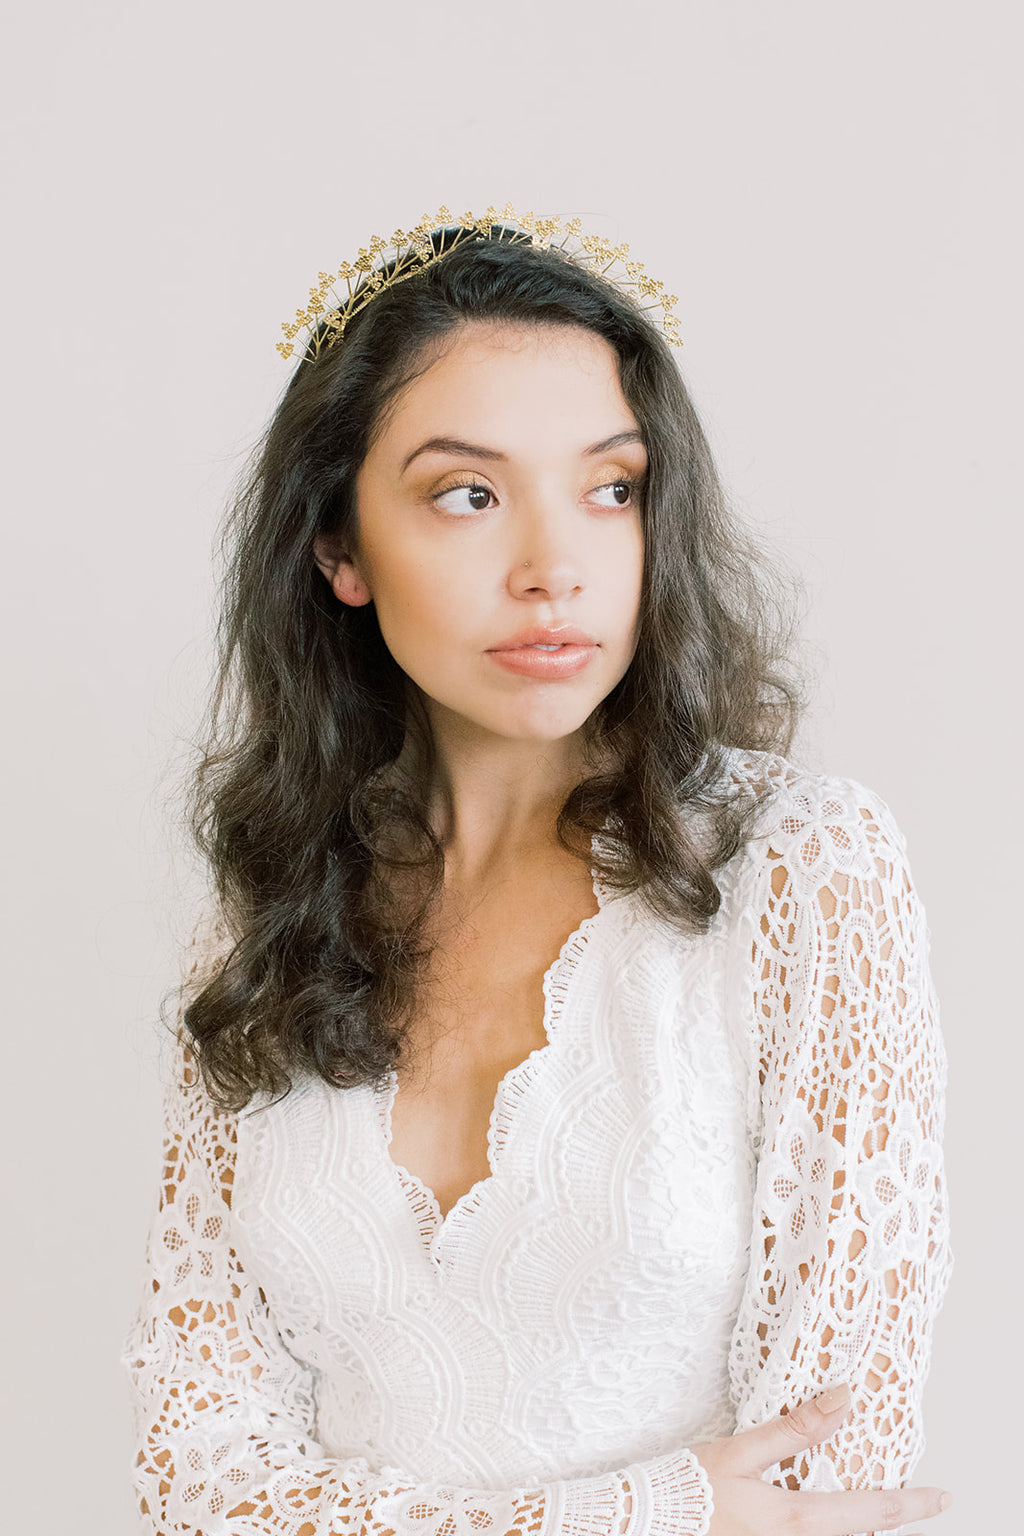 Queen Anne's Lace Crown - Gold Headband, Flower Crown, Bridal, Head Piece, Hair Accessories